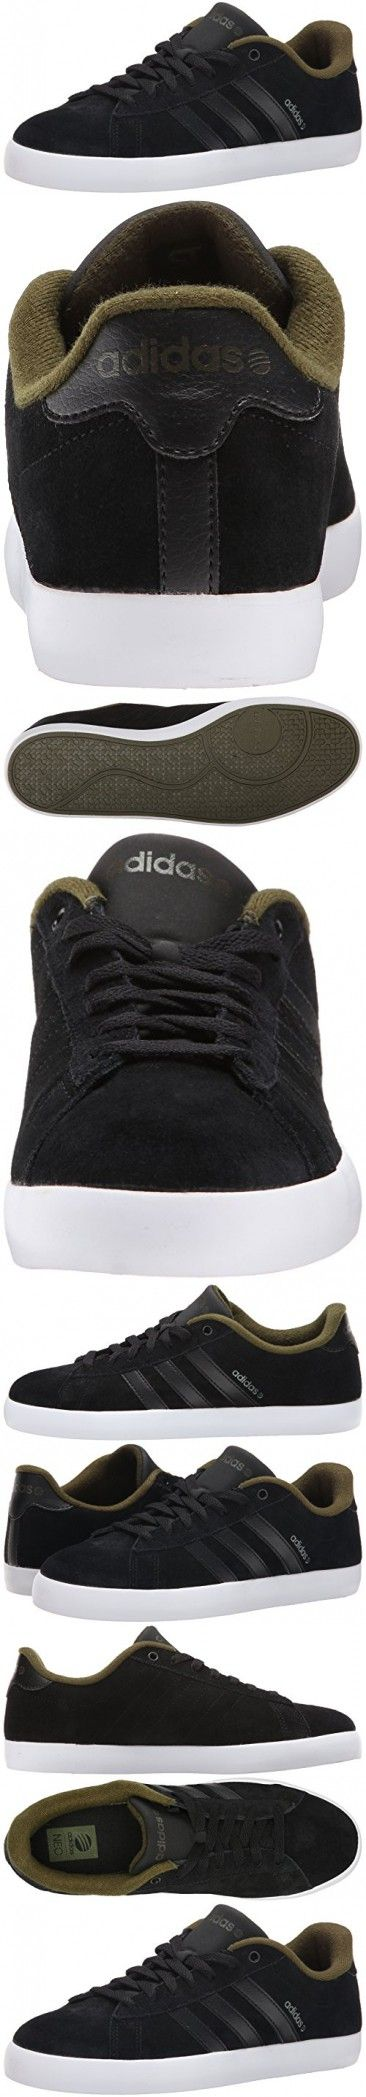 Adidas NEO Men's Derby ST Fashion Sneaker, Black/Black/Dust Green, 8.5 M US